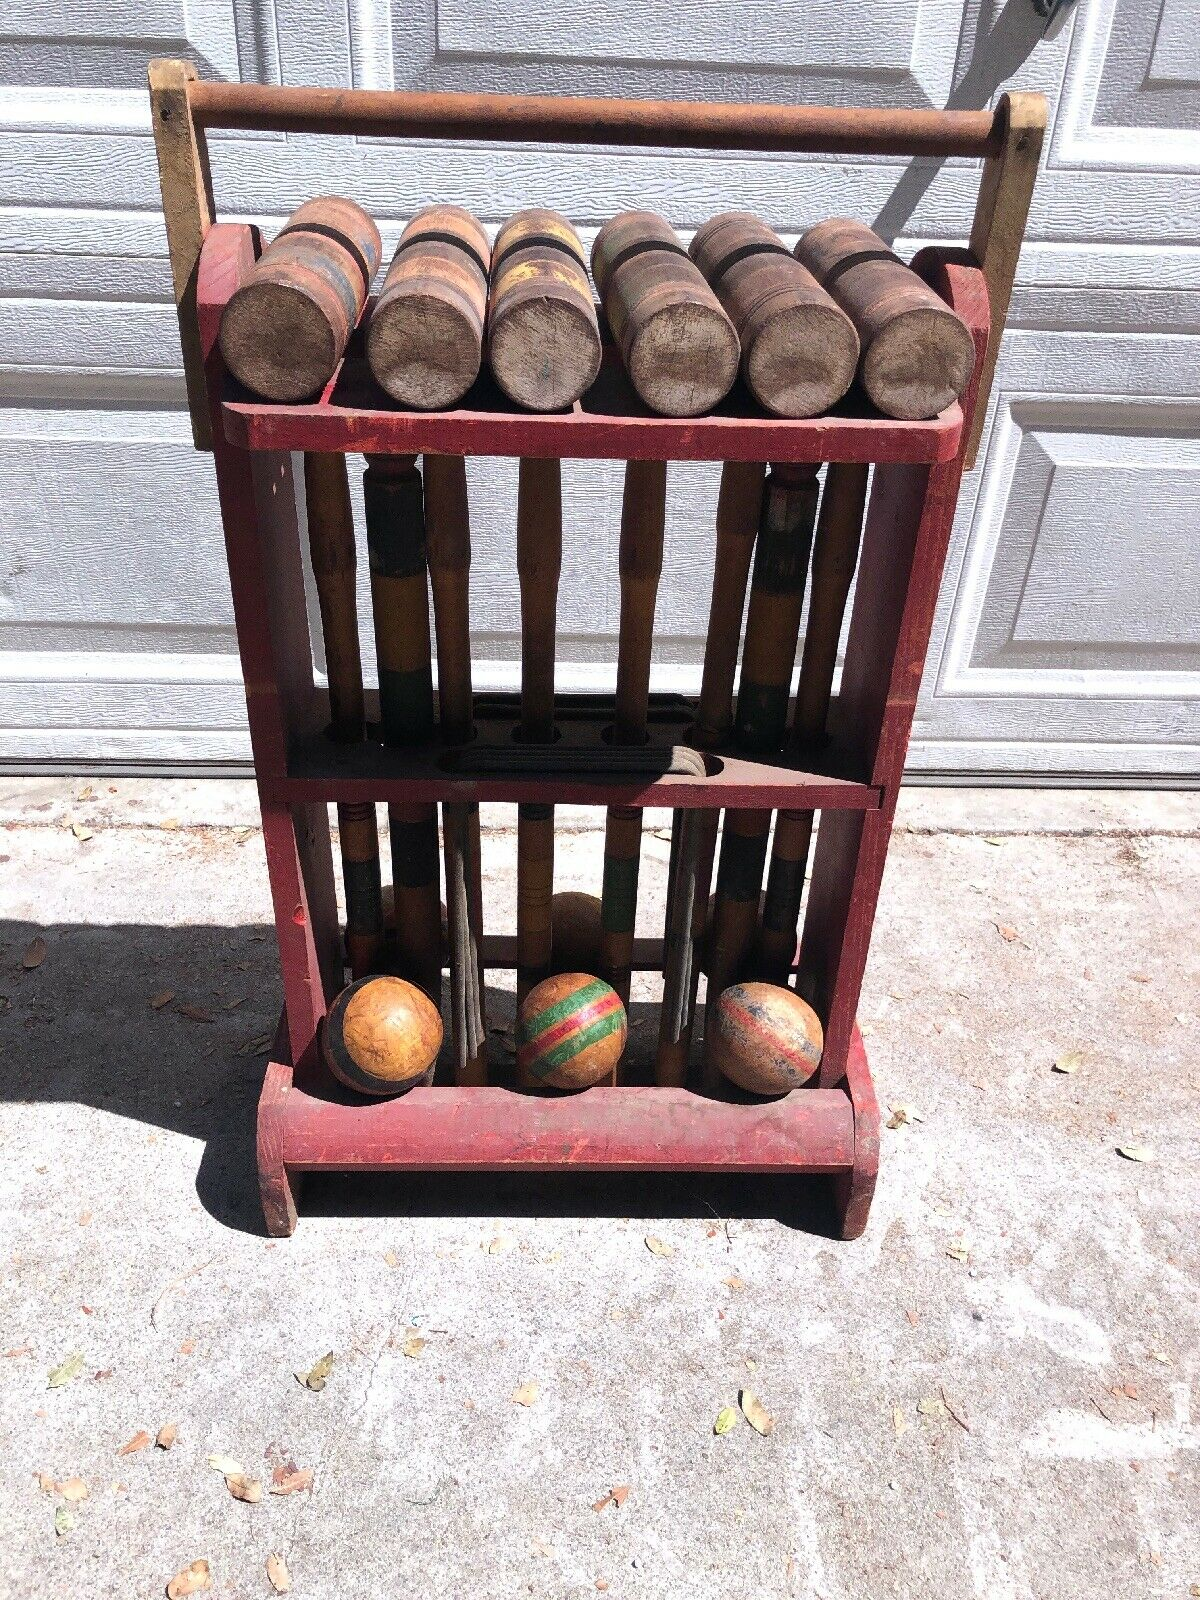 VINTAGE ANTIQUE 6 PERSON CROQUET SET  w Stand SKOWHEGAN LINE by THOMPSON Co MAINE  the latest